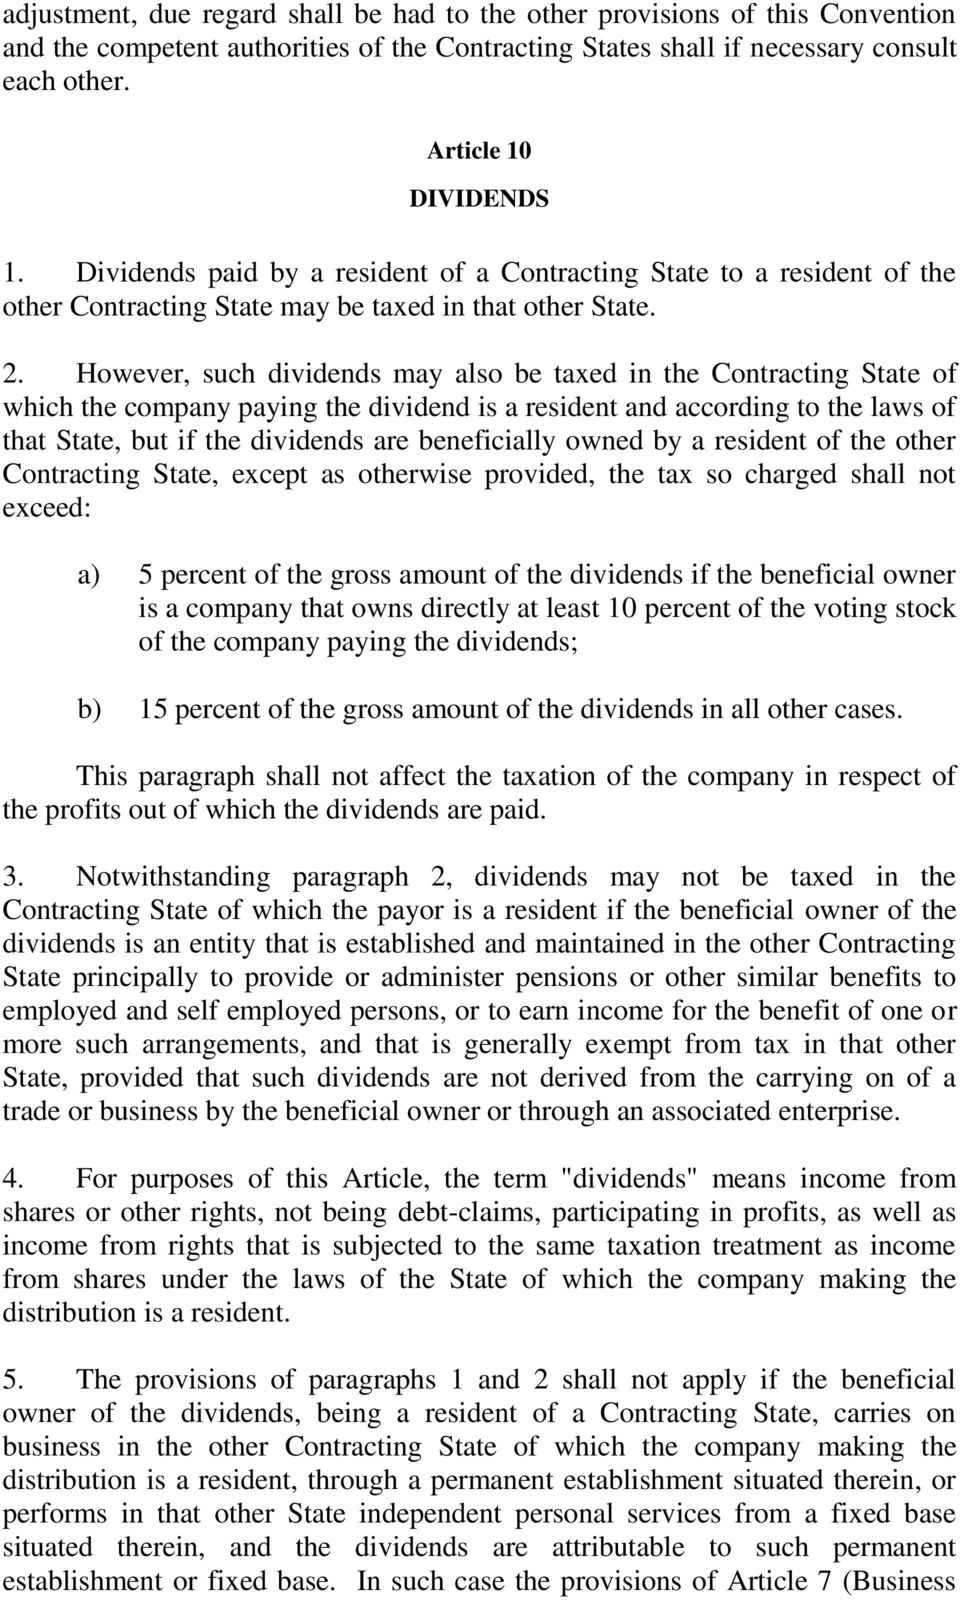 However, such dividends may also be taxed in the Contracting State of which the company paying the dividend is a resident and according to the laws of that State, but if the dividends are